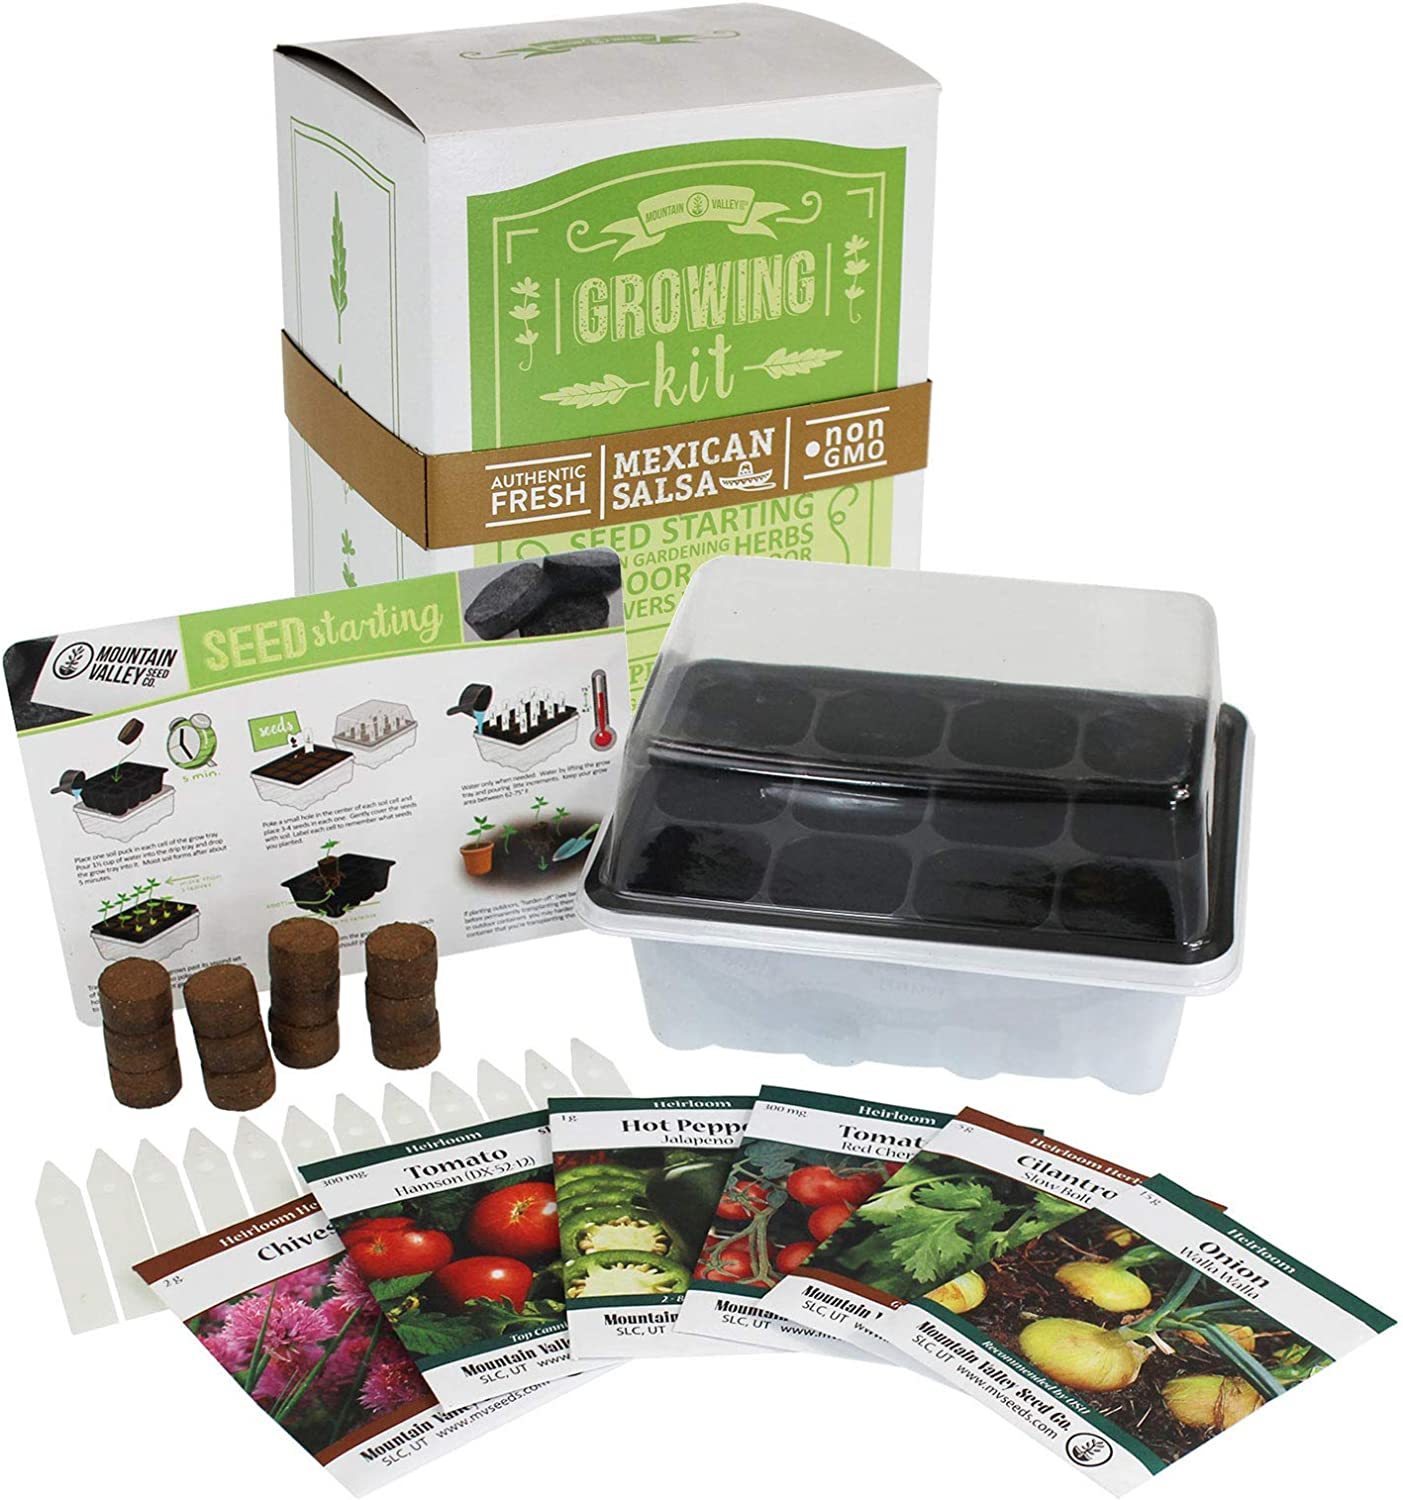 Salad & Vegetable Garden Seed Starter Kit | Basic | 6 Non-GMO Varieties | Gardening Starter Kit | Seeds: Mixed Lettuce Greens, Radish, Carrot, Tomato, Cabbage & More